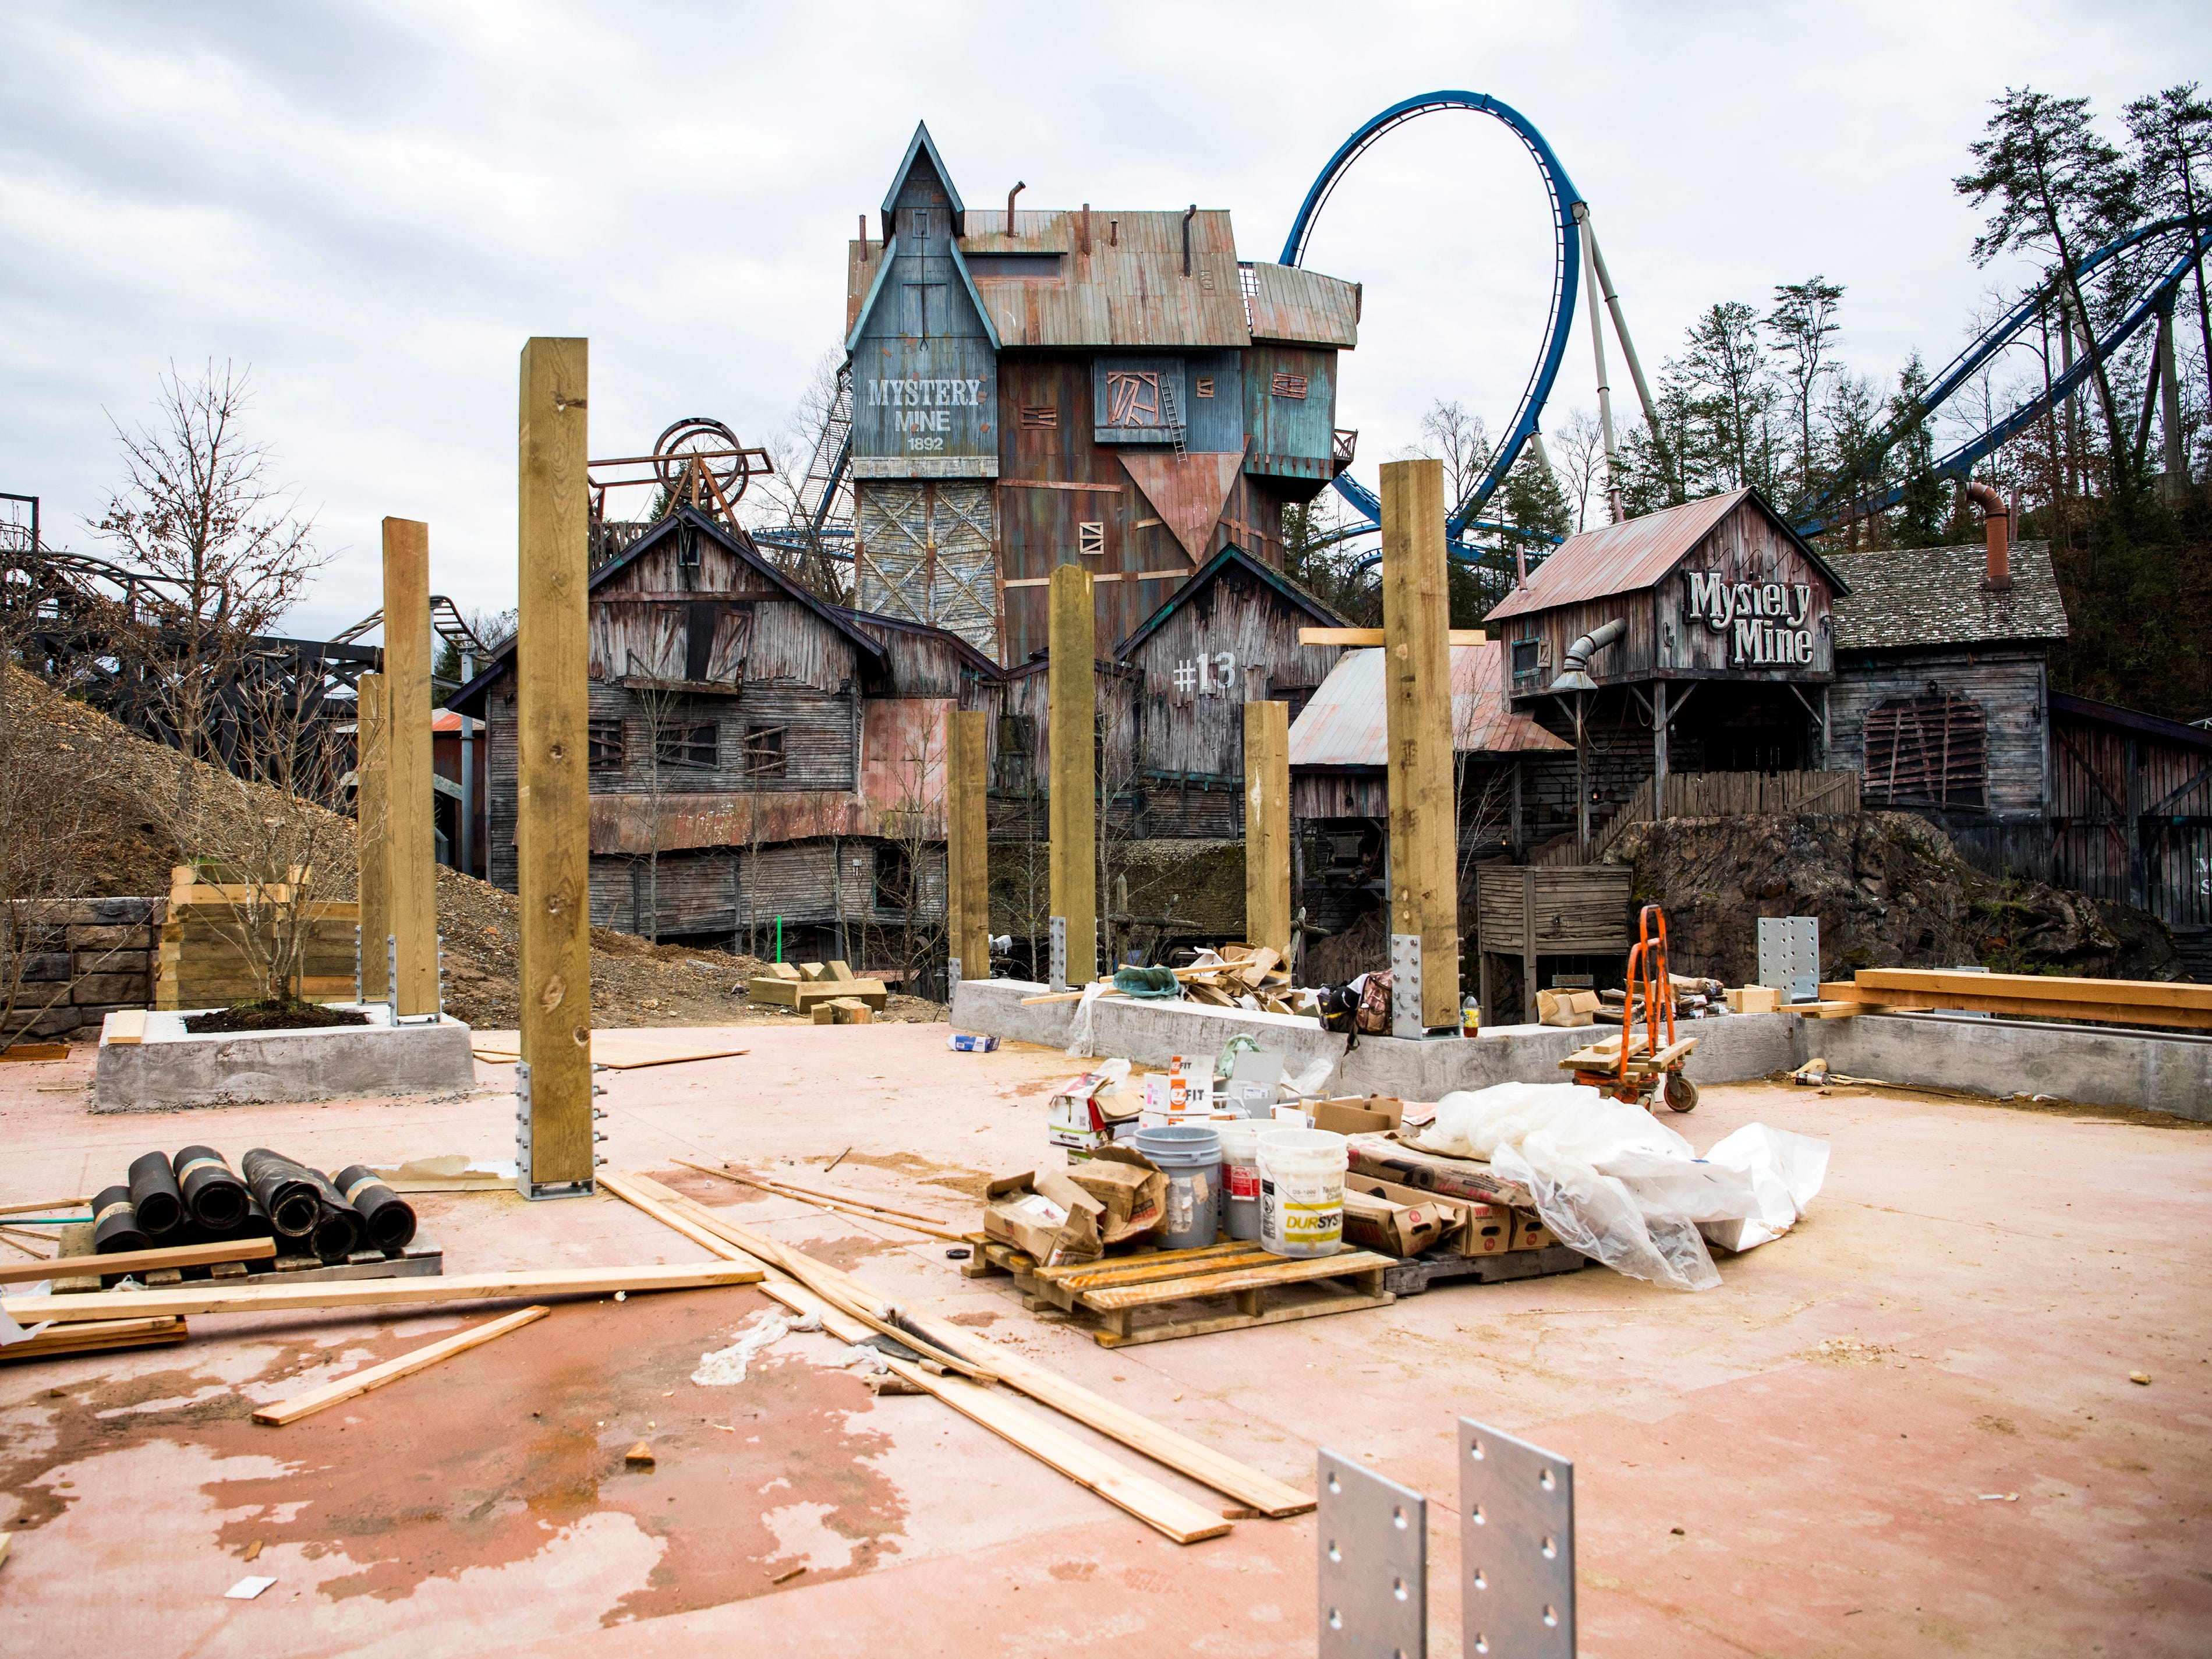 A dining porch area in Dollywood's new Wildwood Grove area of the park on Tuesday, February 19, 2019.